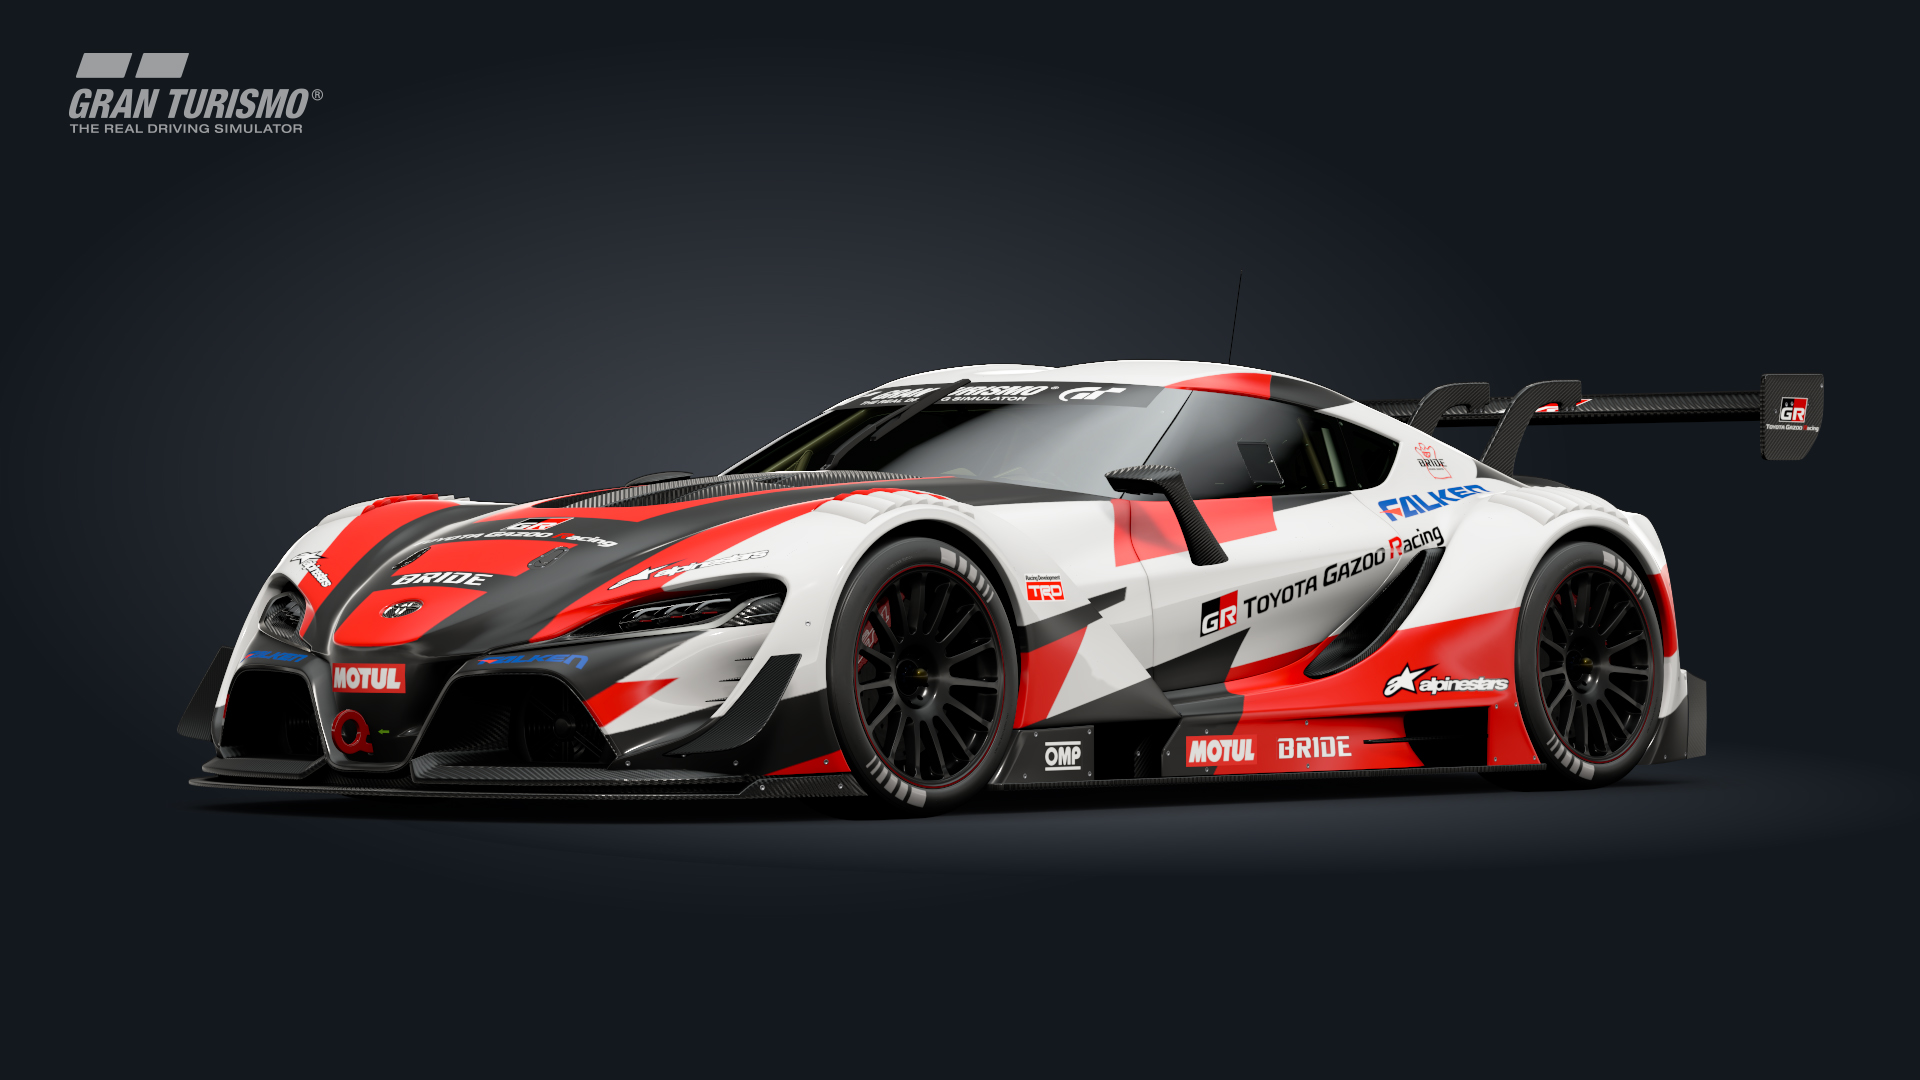 GT racing sport has more than 8.2 million users, the sixth in sales series